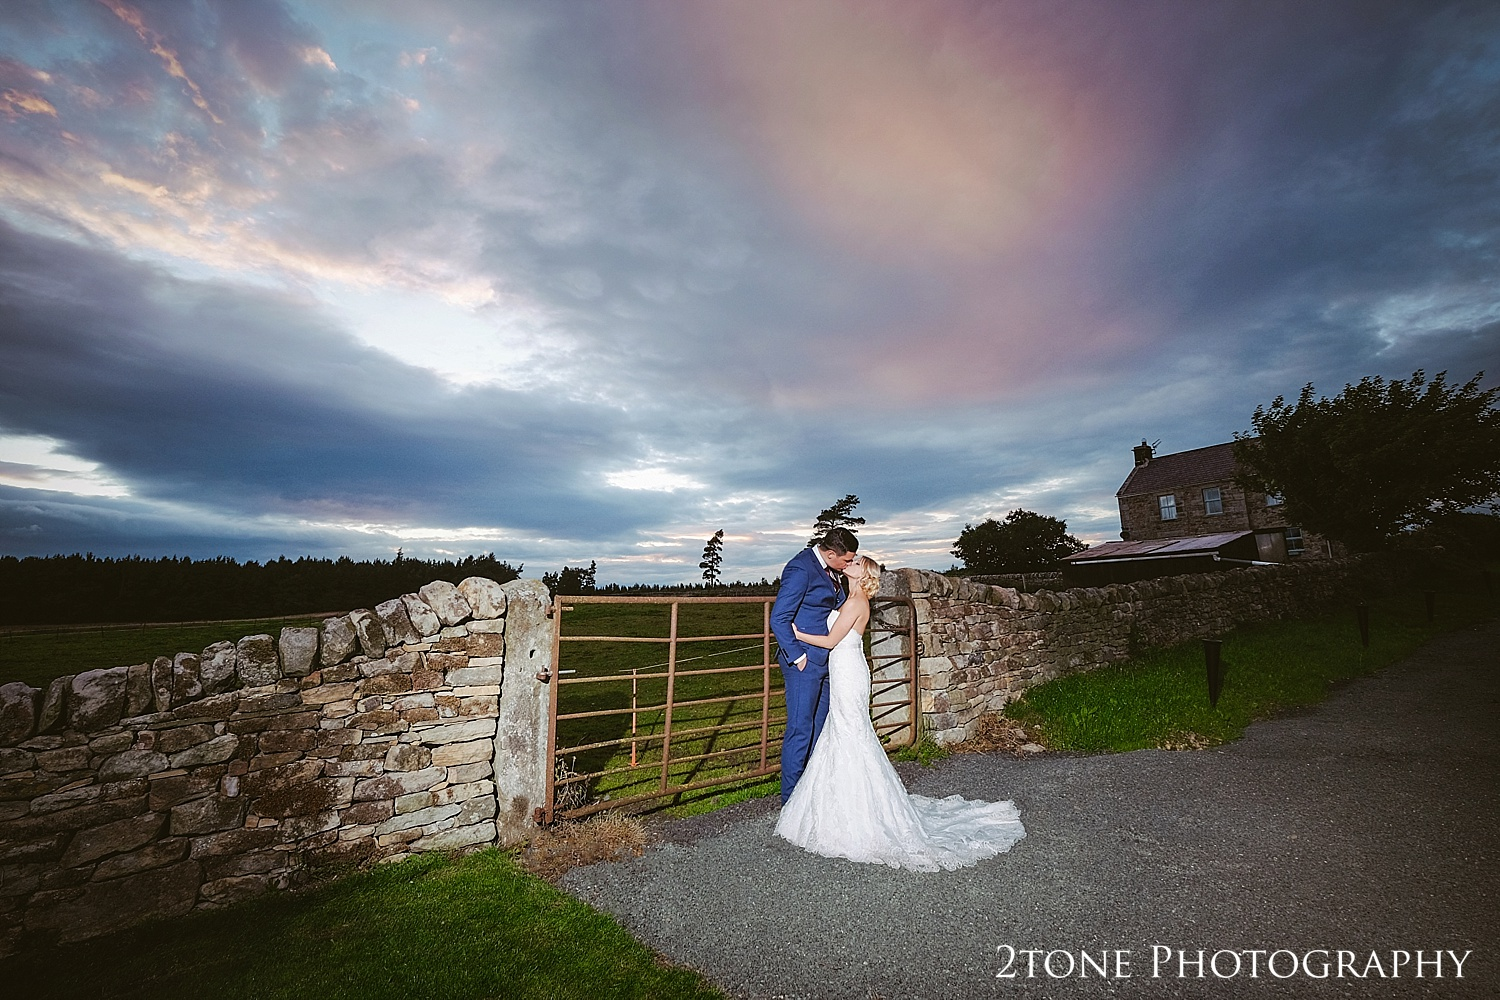 Sunset portrait at Healey Barn by wedding photography team, 2tone Photography www.2tonephotography.co.uk